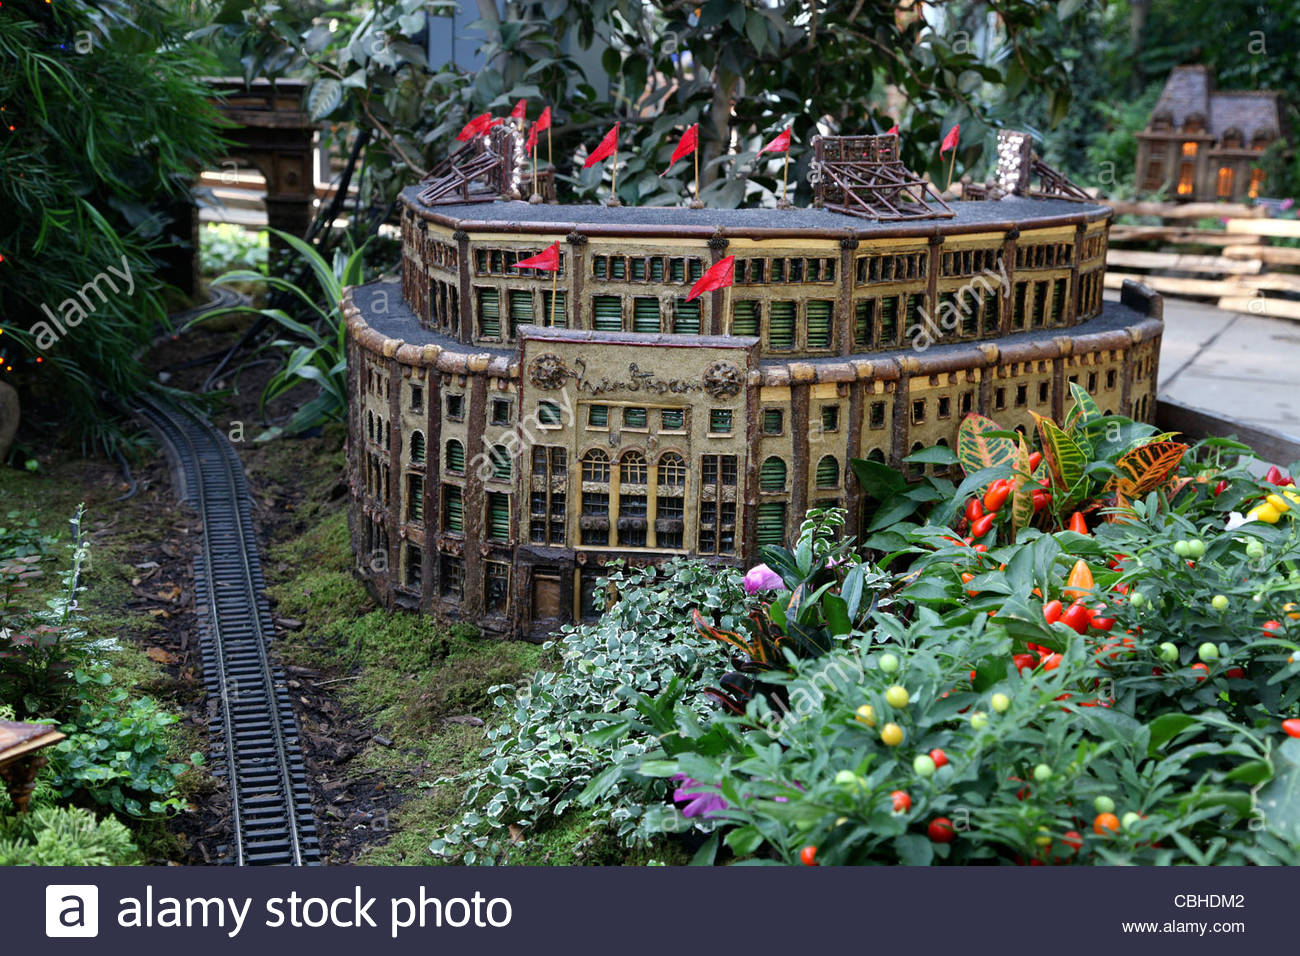 Bon The Holiday Train At The Bronx Botanical Gardens, The New York Landmarks  Are All Made Out Of Bark, Nuts And Wood